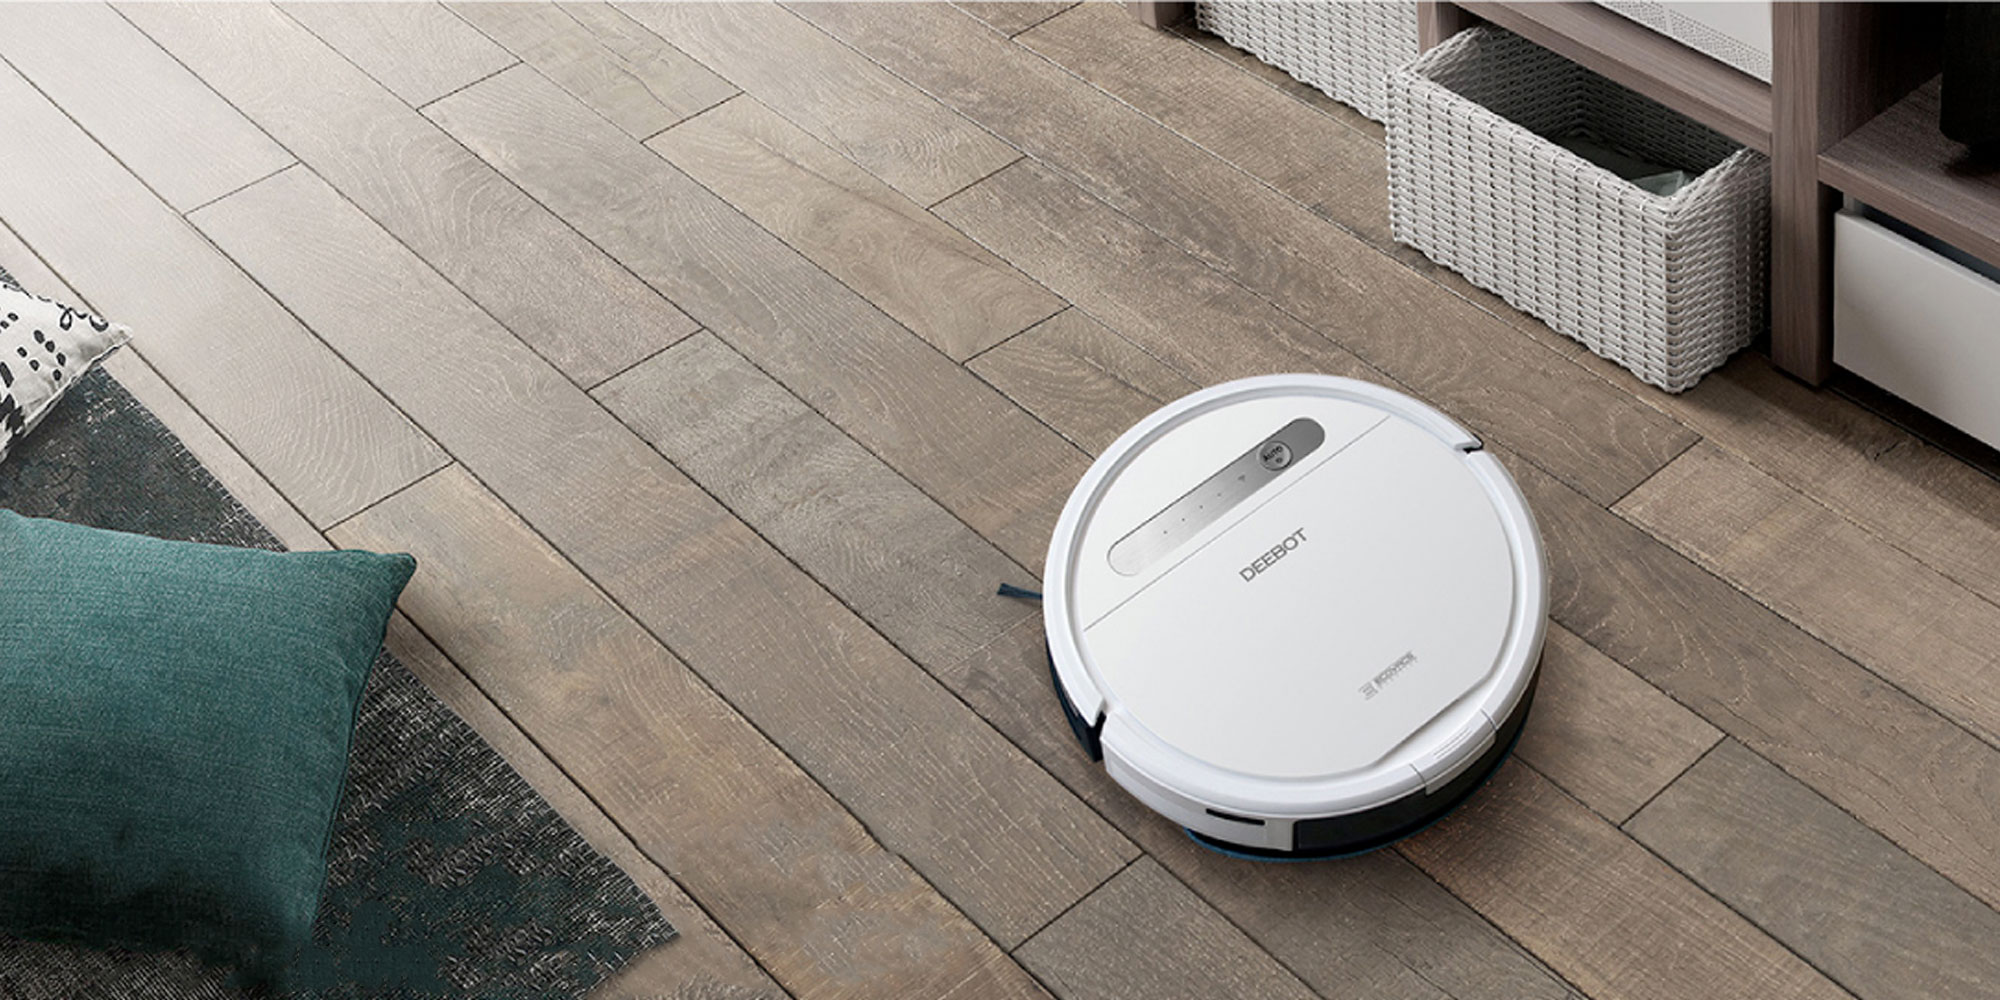 DEEBOT's robotic vacuum & mop cleans w/ just your voice at $280 (Reg. $400), more from $108